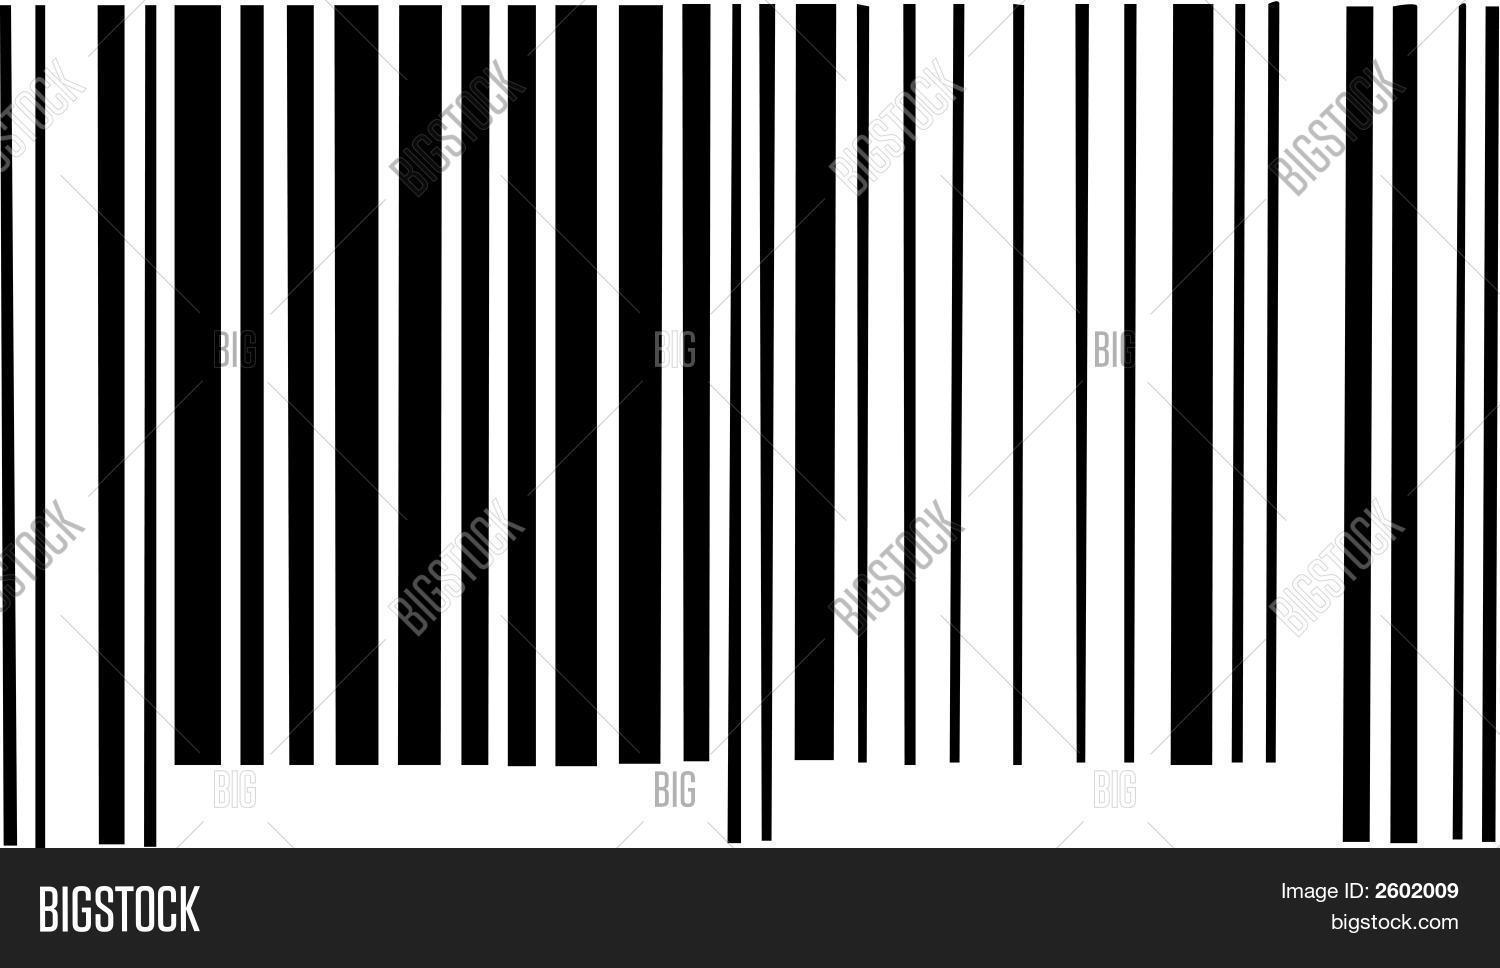 barcode eps vector photo free trial bigstock